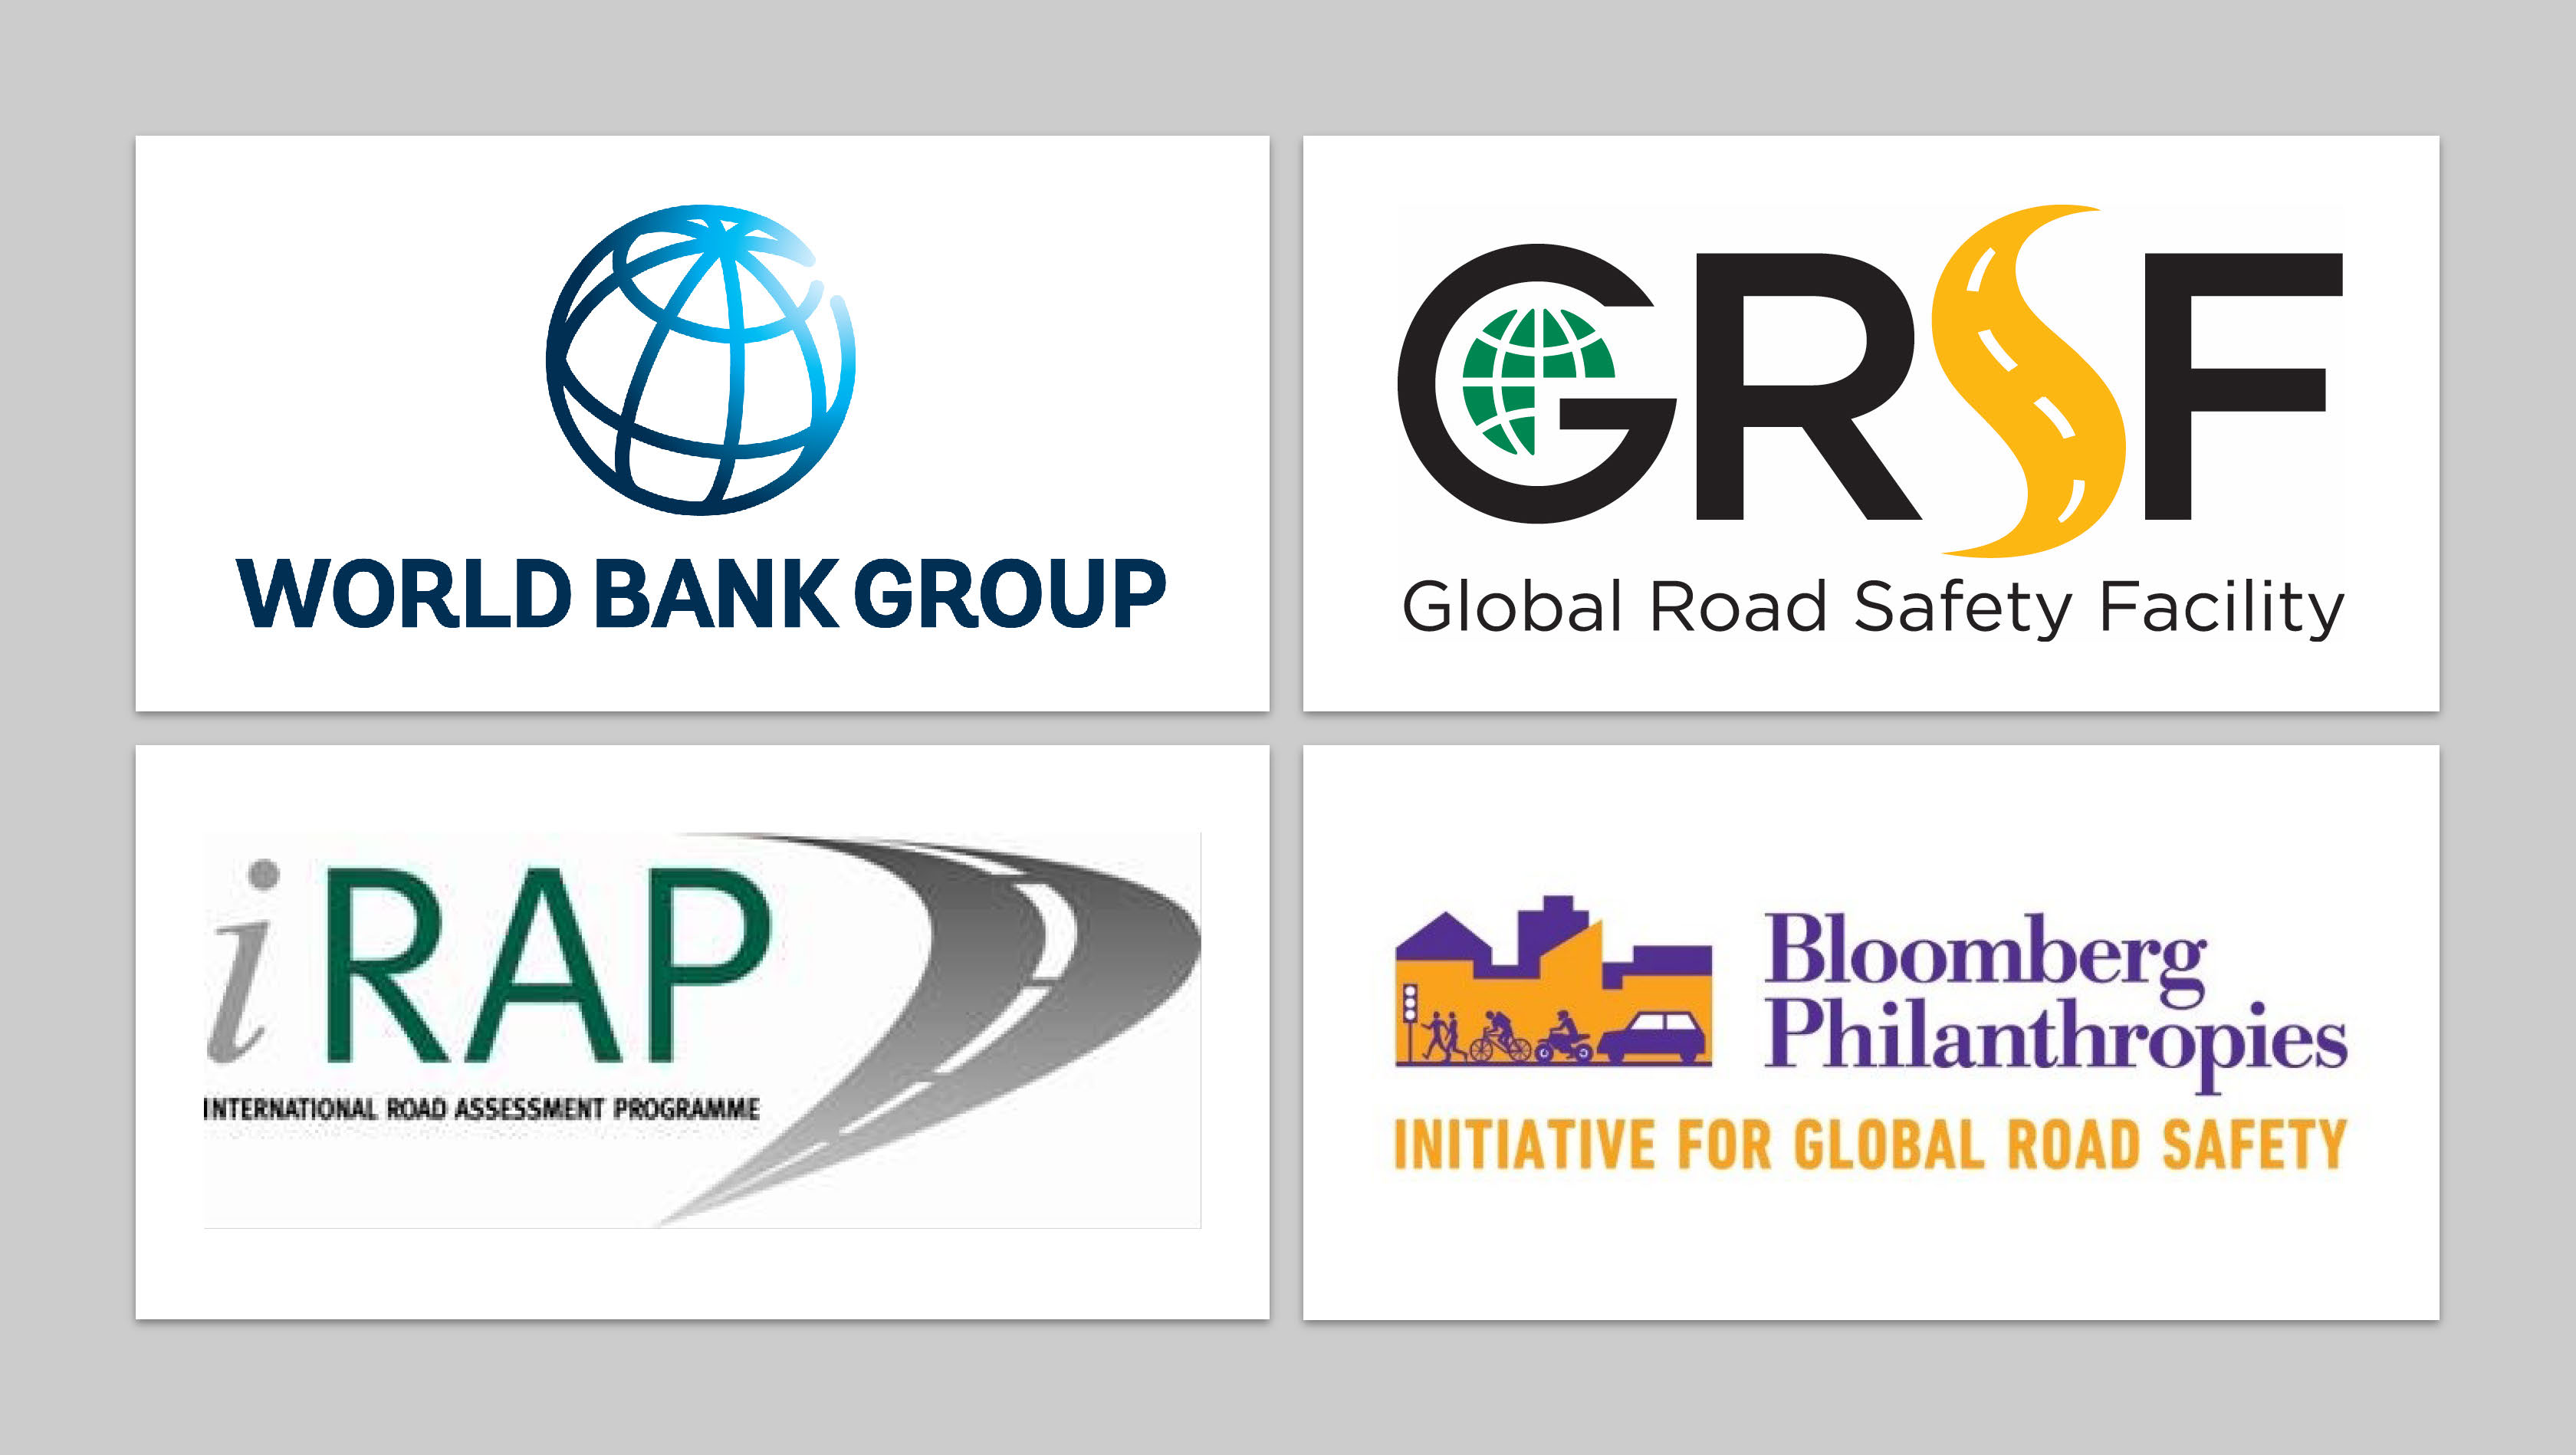 World Bank and iRAP share success of the Bloomberg Philanthrophies Initiative for Global Road Safety – 10 cities and 5 countries in 5 years